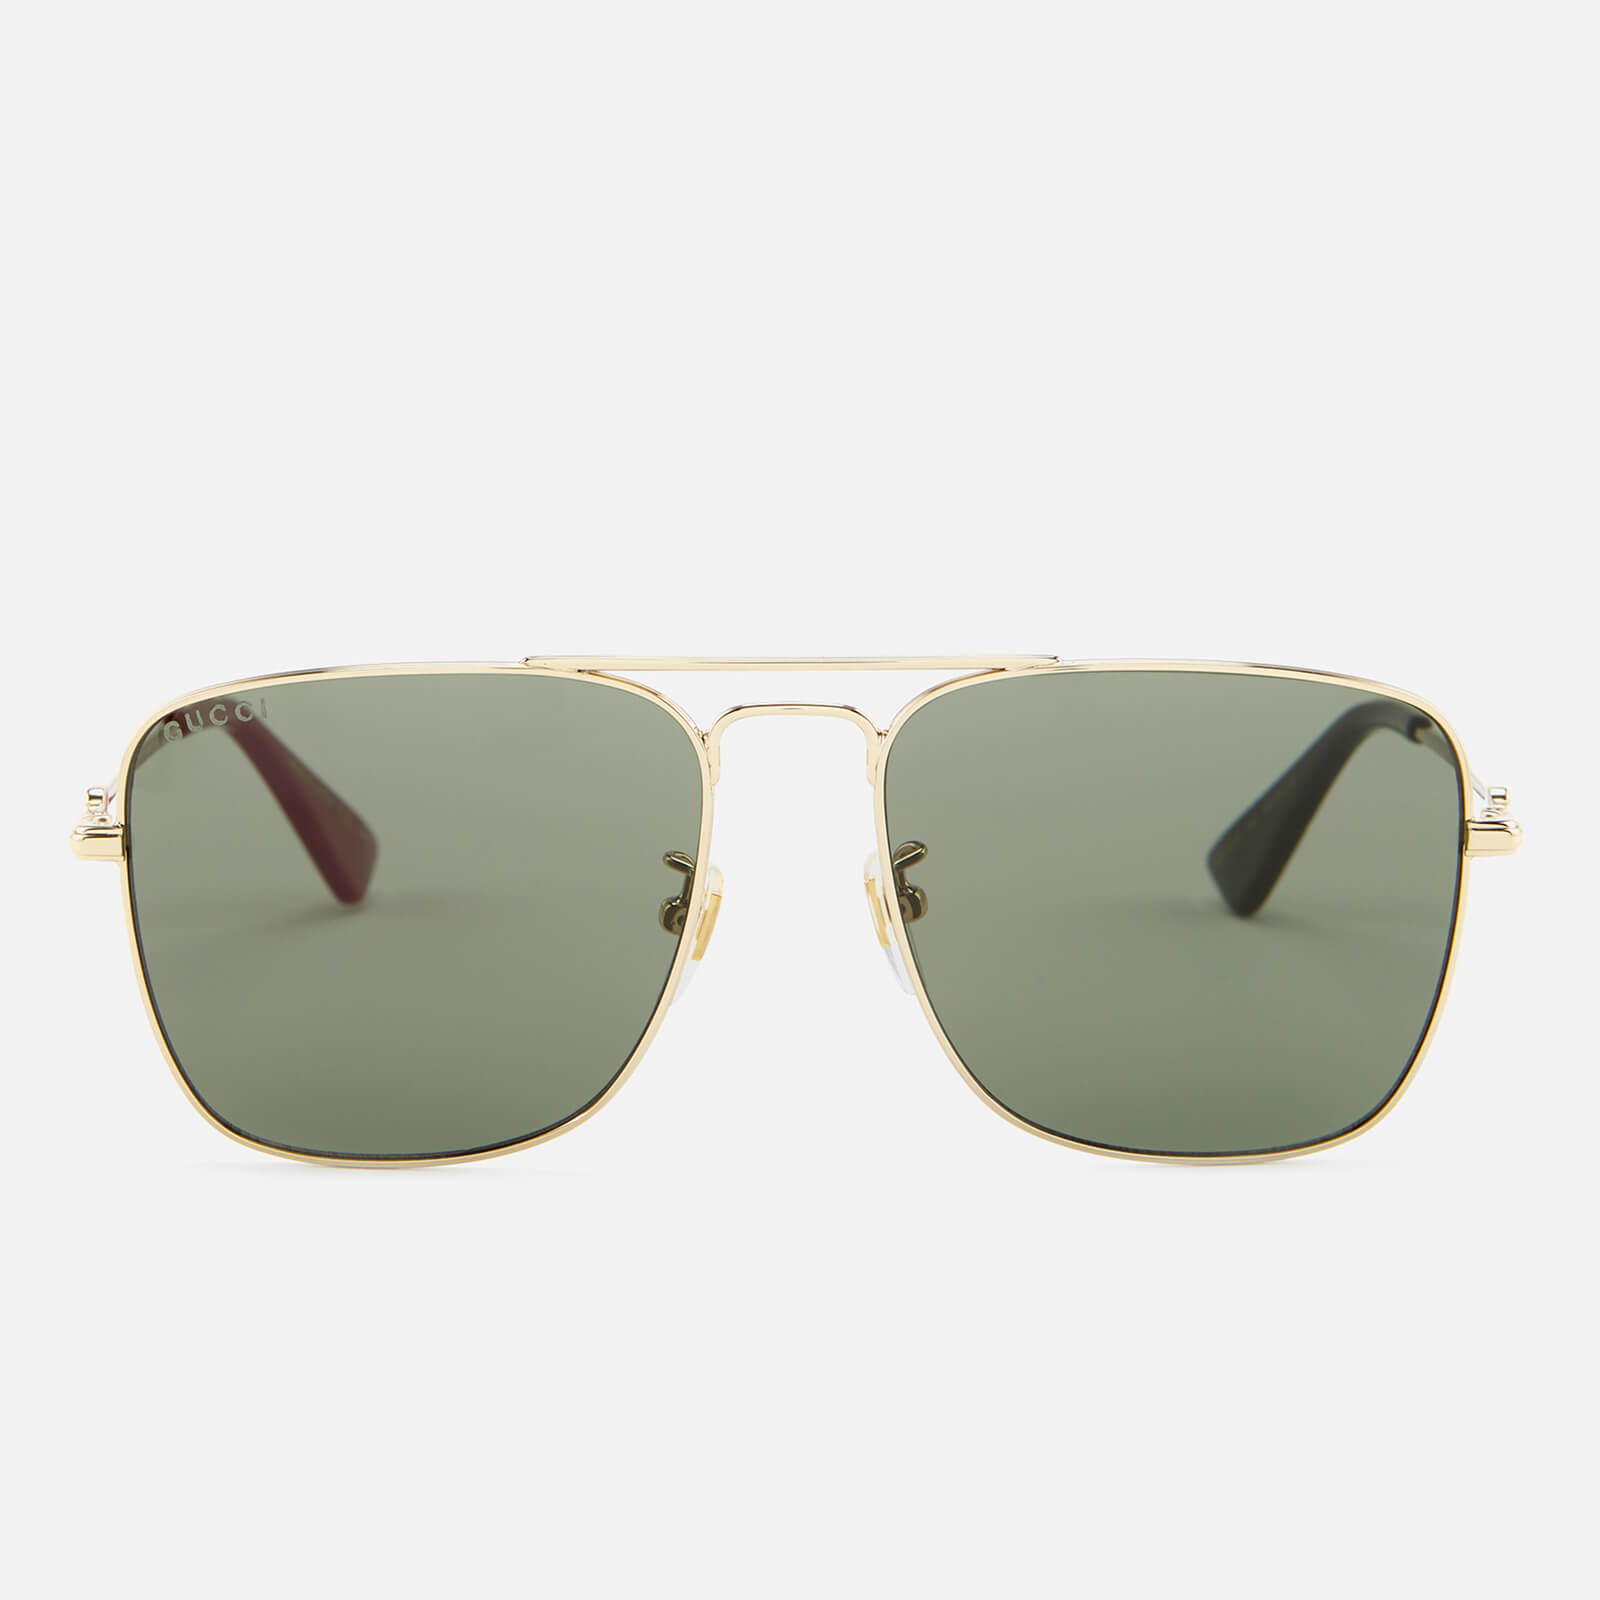 9a5aabc8c3 Gucci Men s Square Metal Frame Sunglasses - Gold Green - Free UK Delivery  over £50